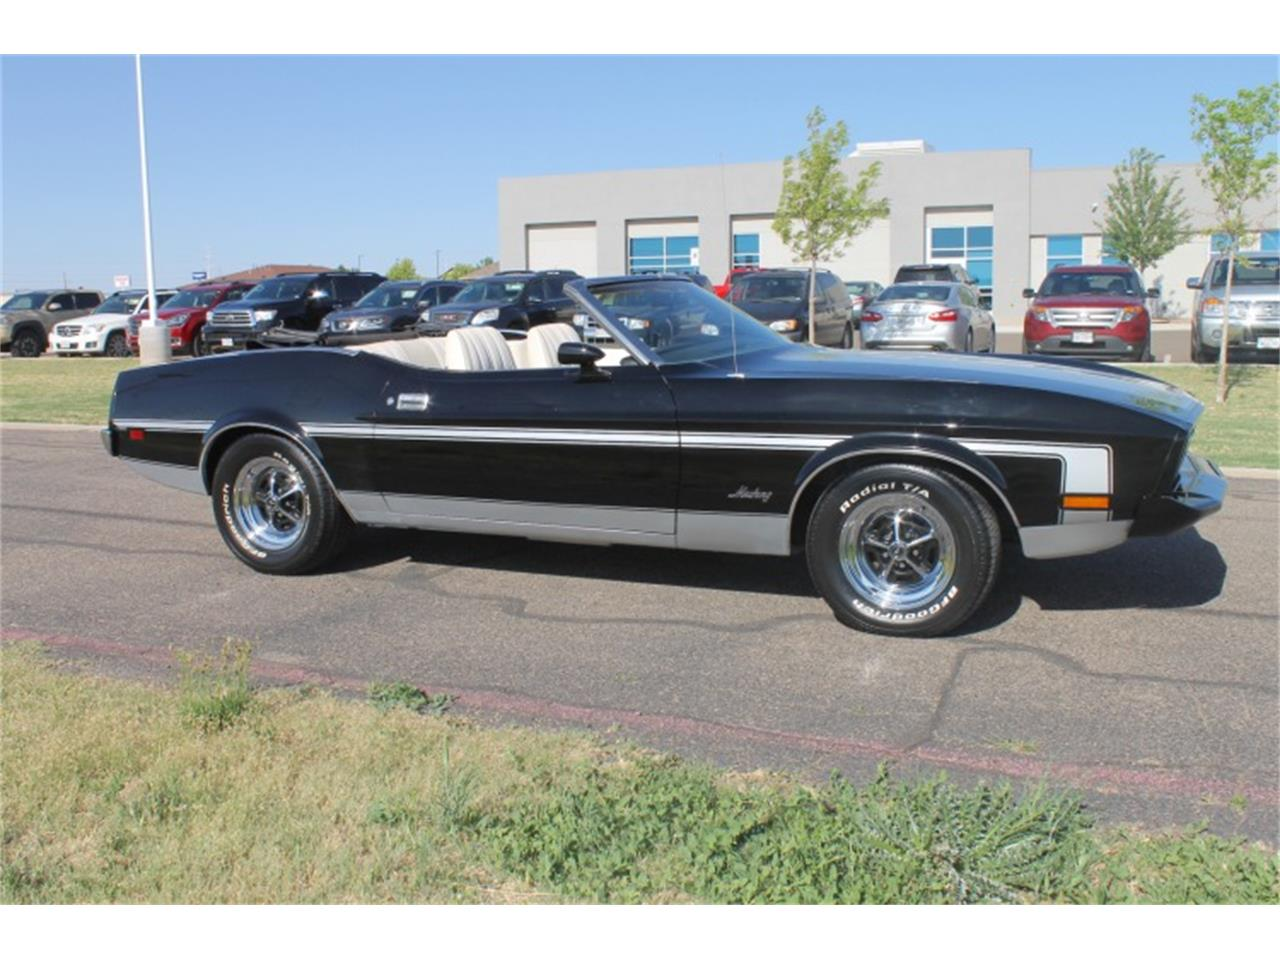 Large Picture of Classic '73 Mustang located in Peoria Arizona Auction Vehicle Offered by Silver Auctions - OM43